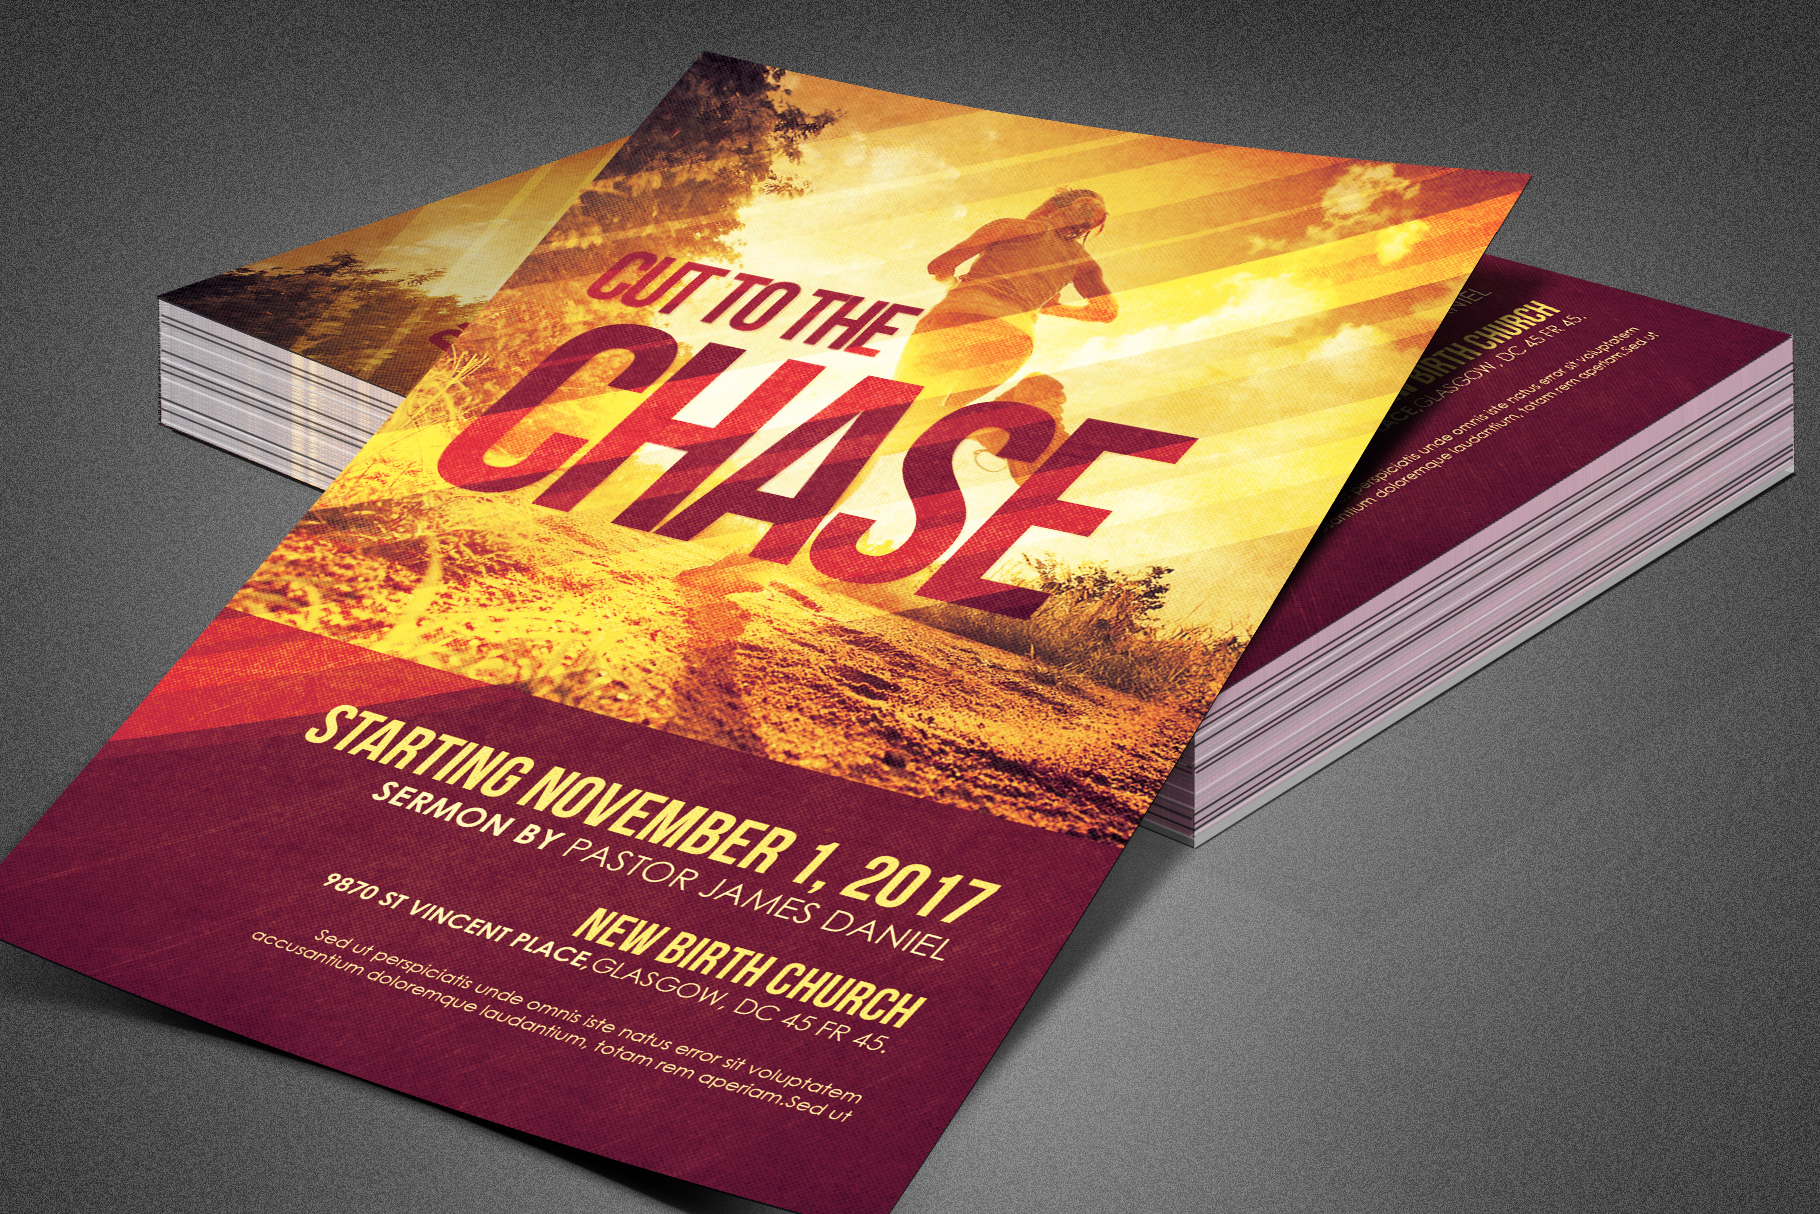 Cut to the Chase Church Flyer example image 4